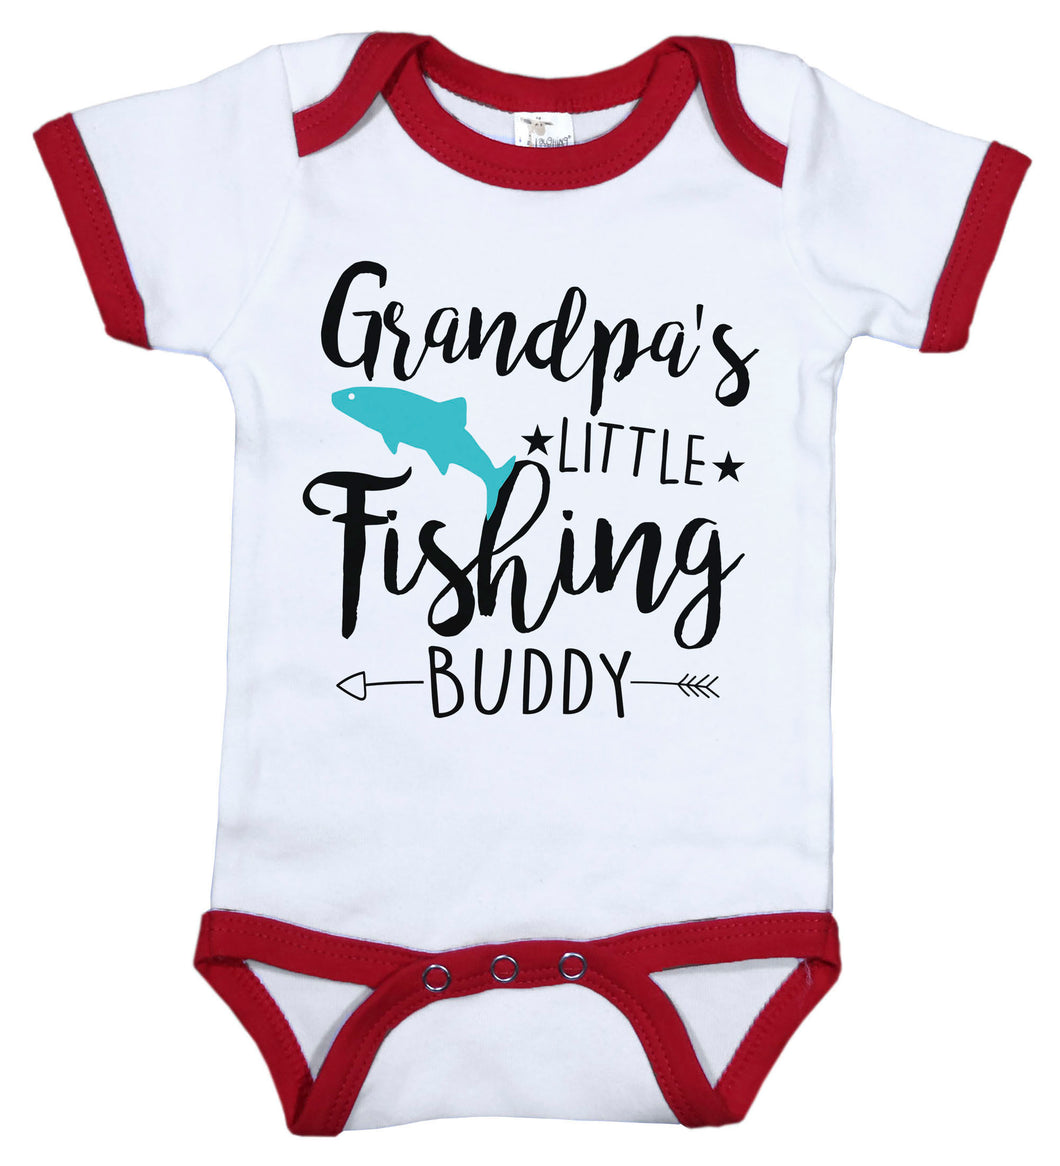 Grandpa's Little Fishing Buddy / Gpa Ringer Onesie